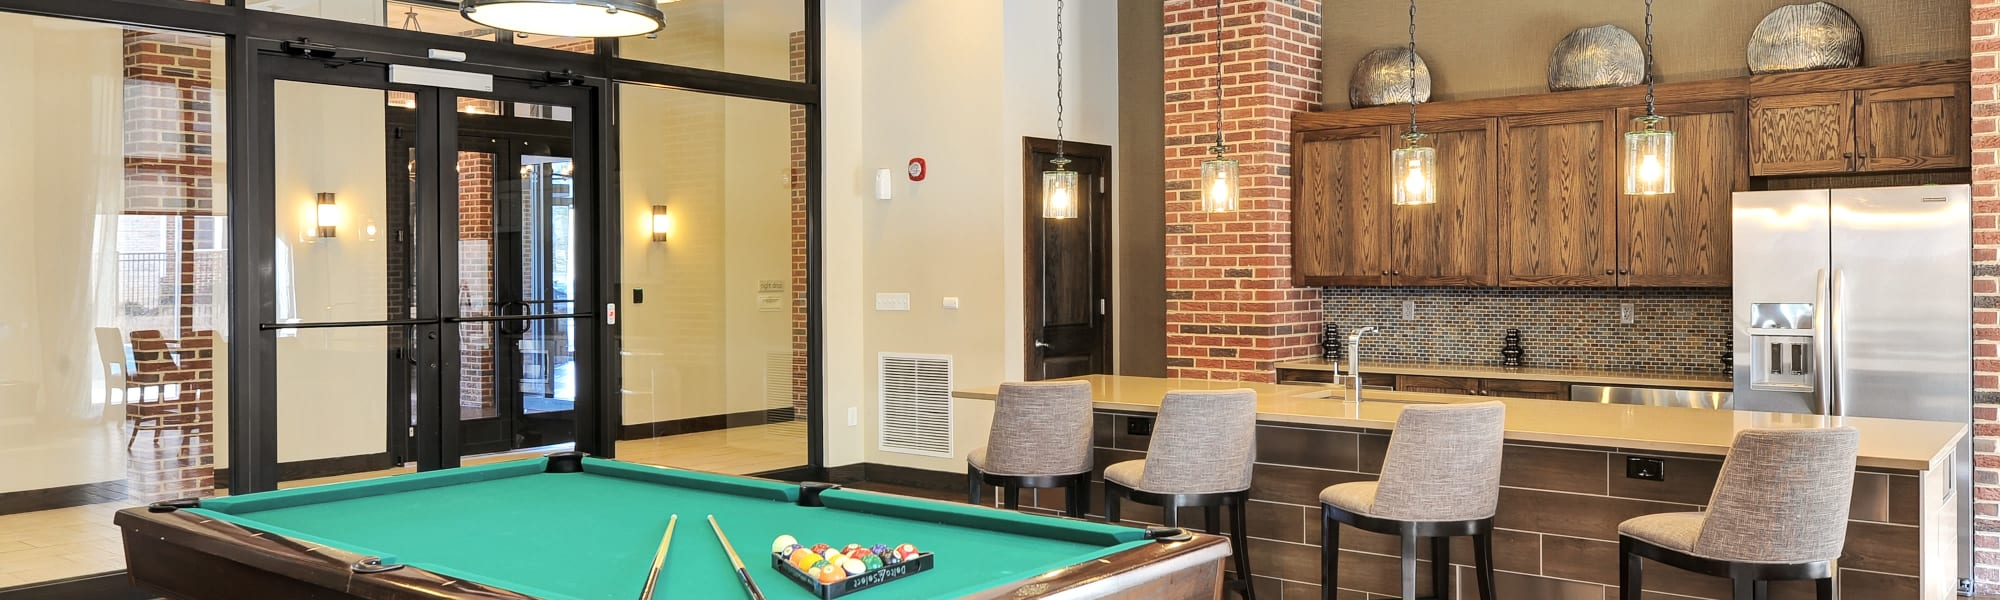 Amenities at The Mark at Brickyard Apartment Homes in Beltsville, Maryland